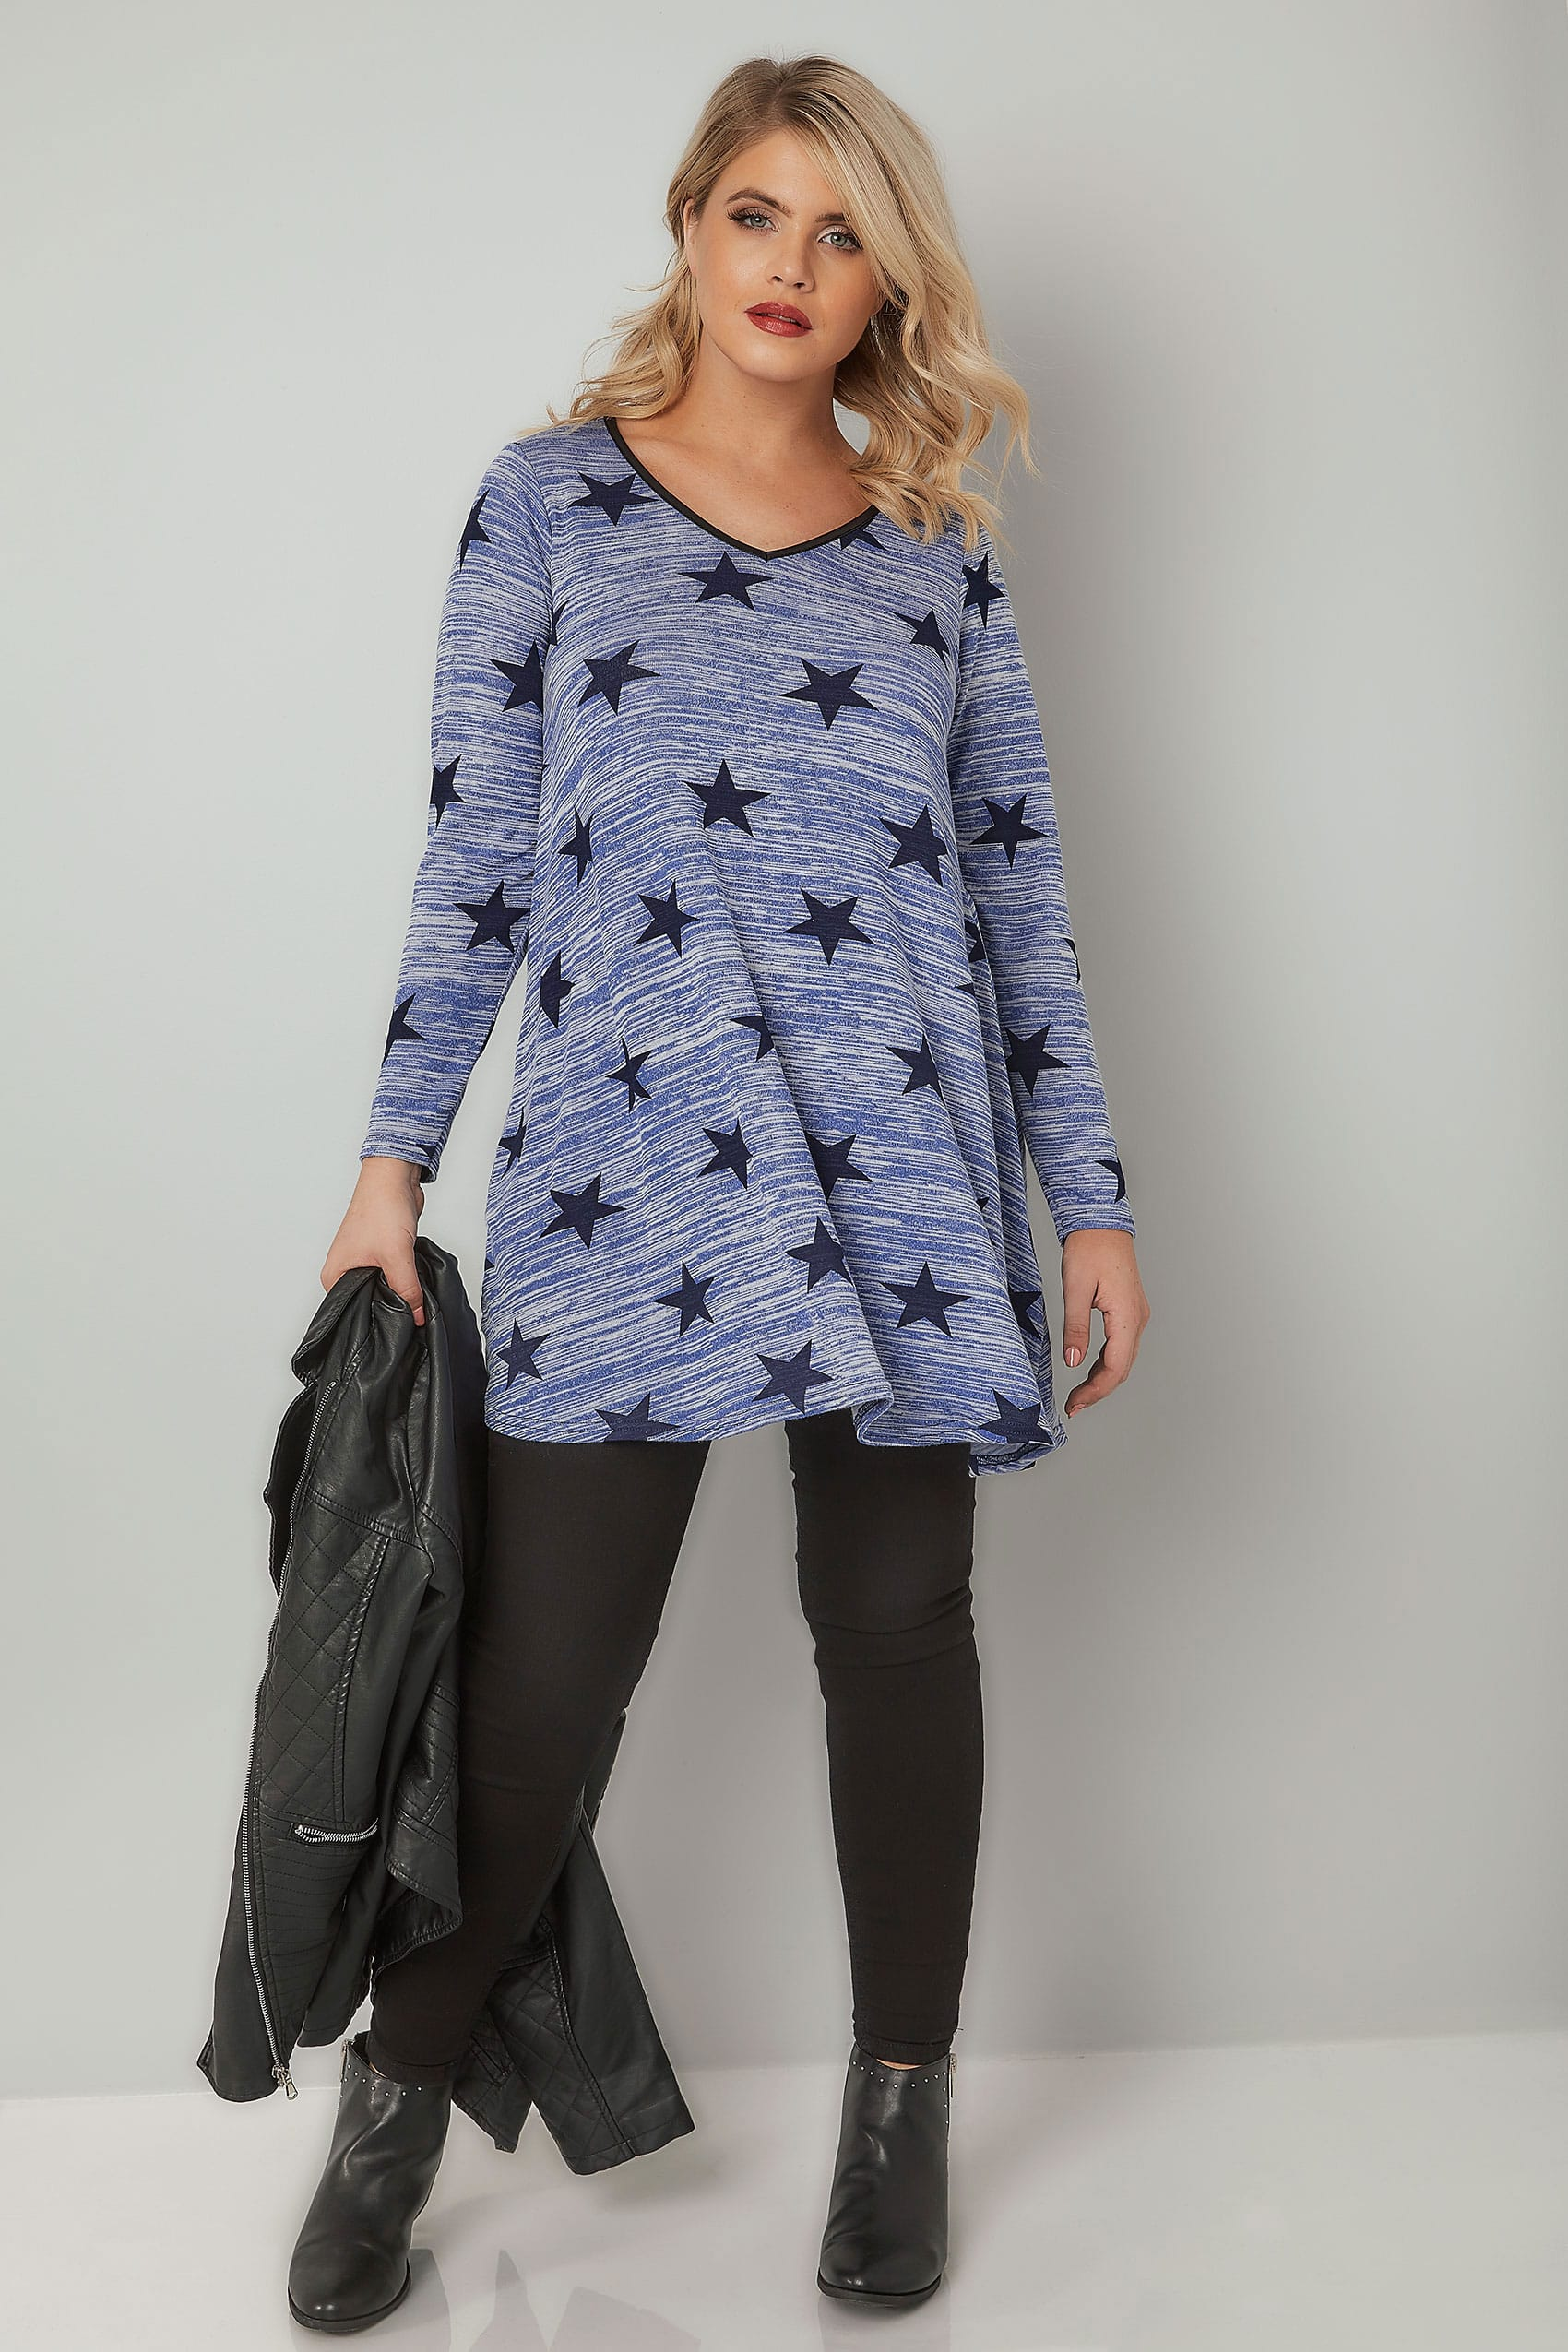 Light Blue Star Print Longline Swing Top, Plus Size 16 To 36